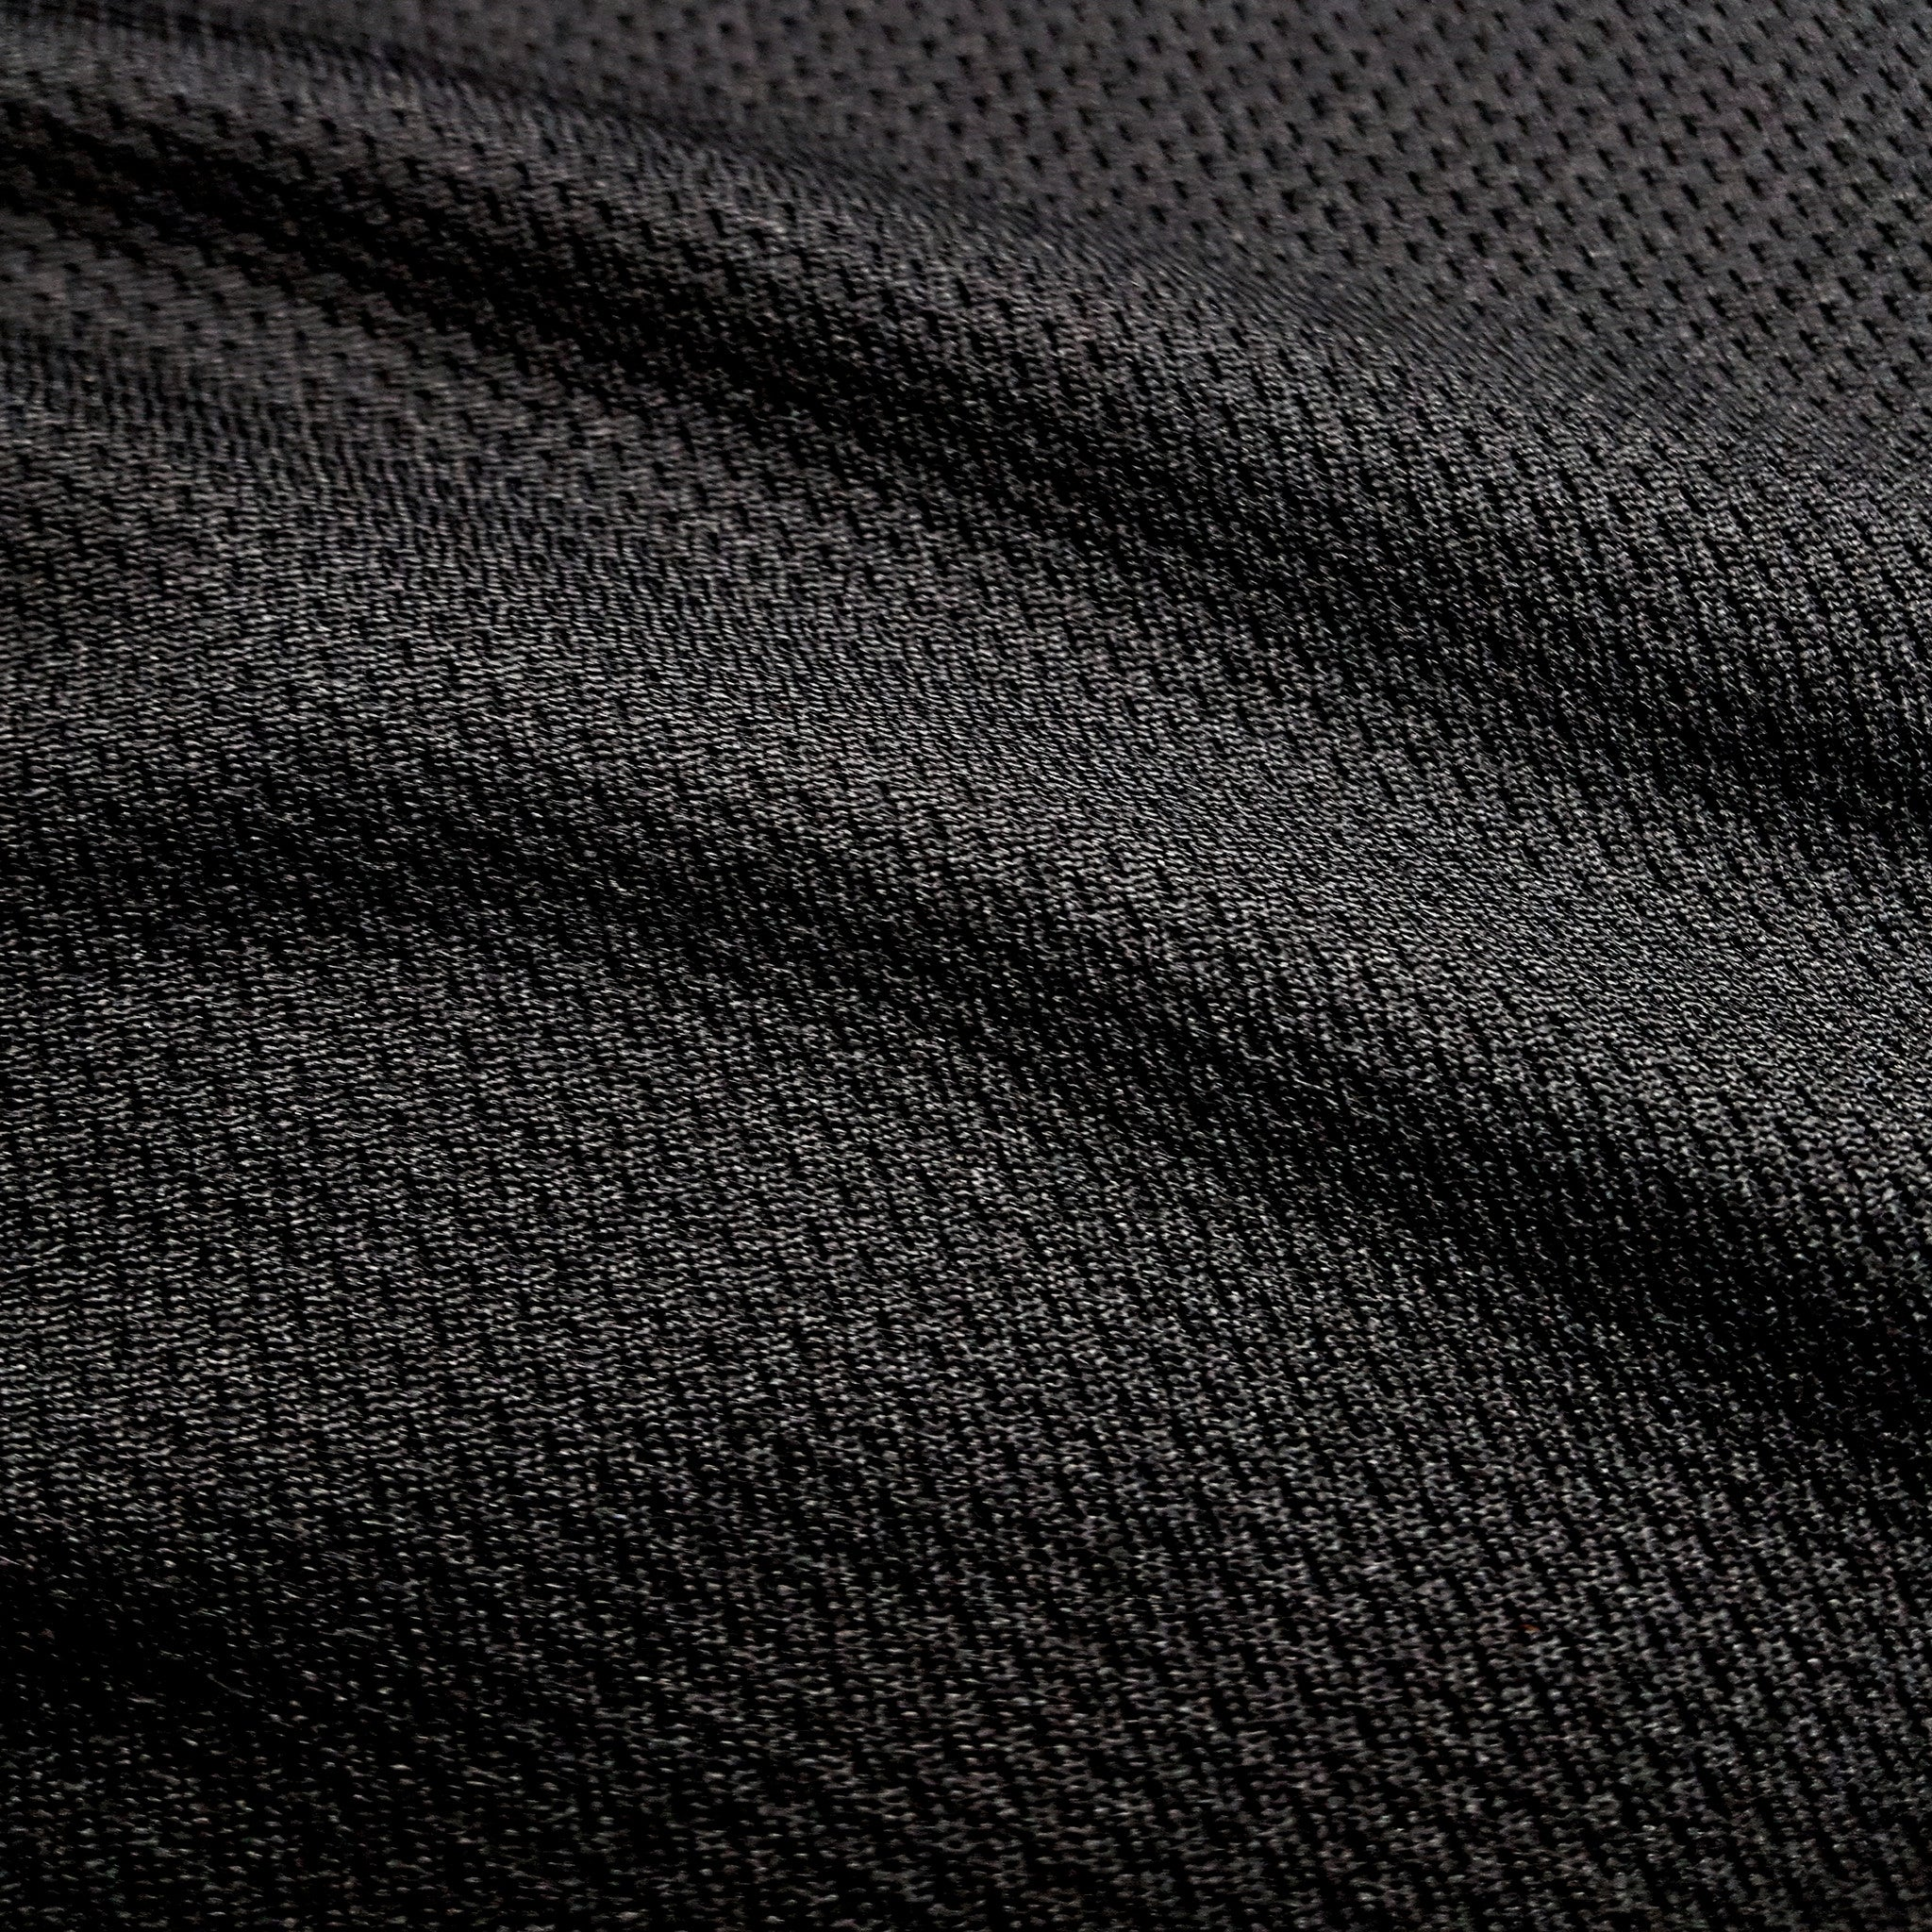 SportyFish Black Series black t-shirt: Black marlin close-up view 3